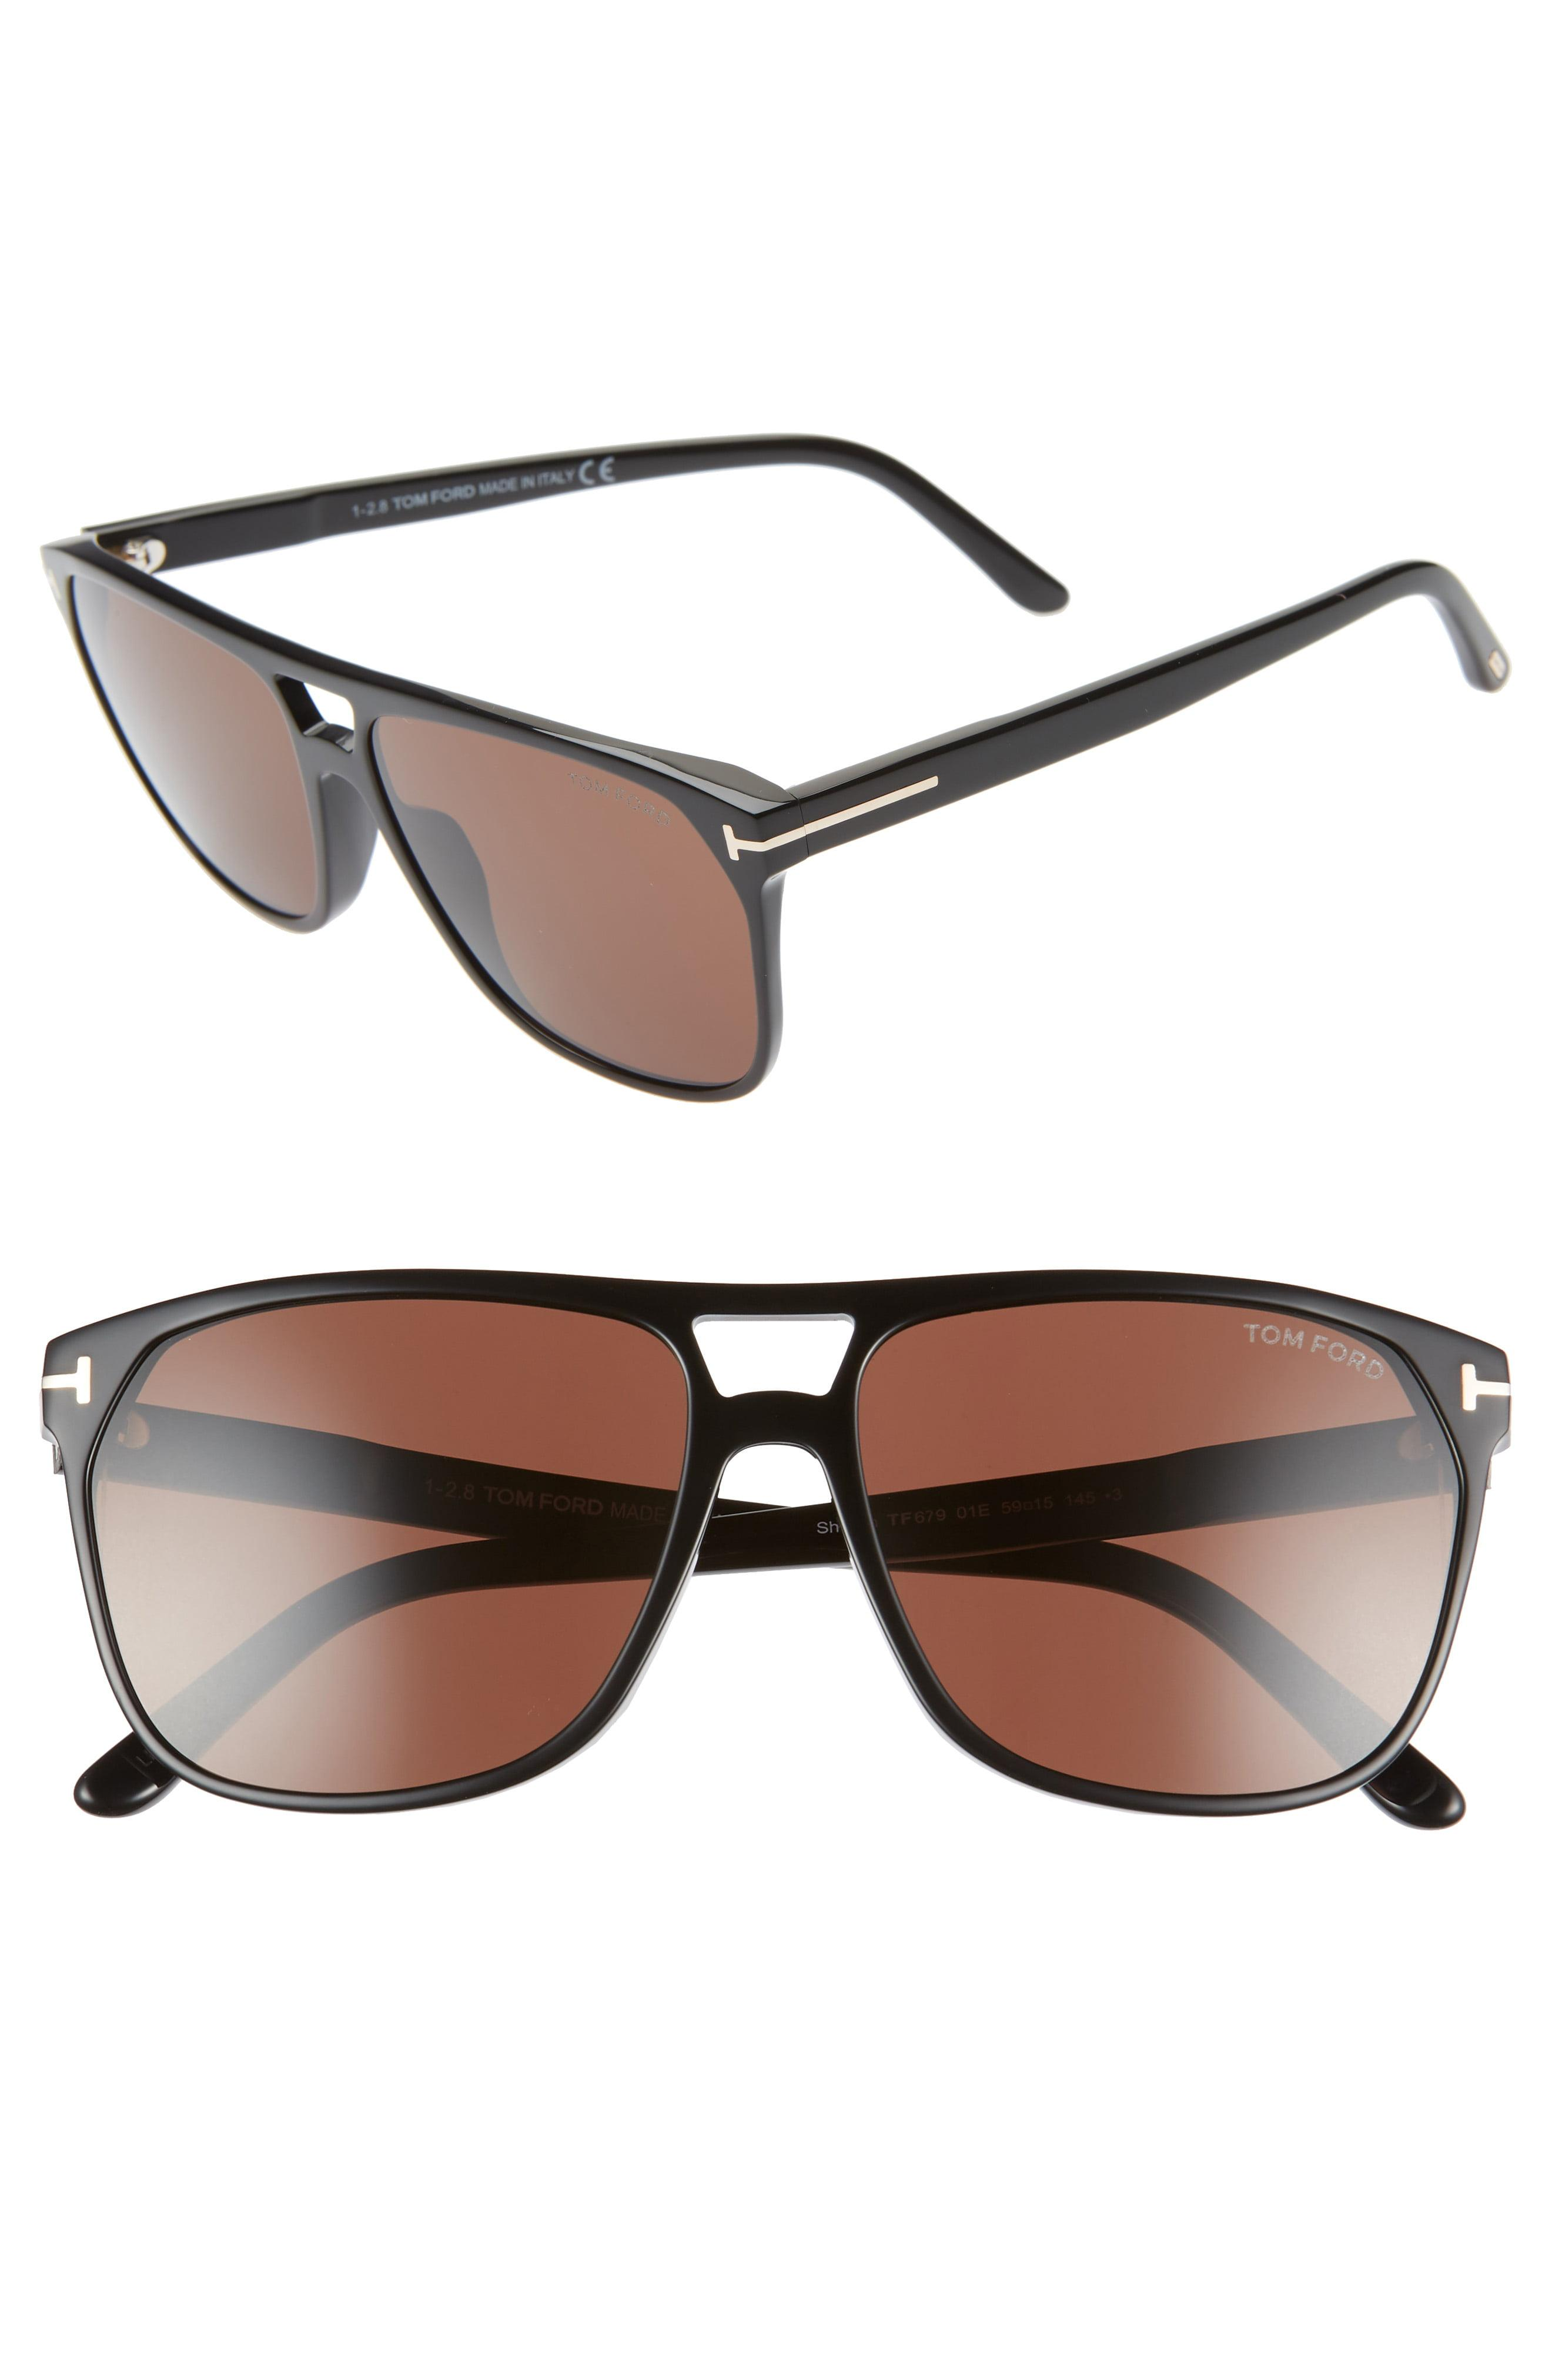 b205e595f61e Tom Ford - Shelton 59mm Sunglasses - Shiny Black  Brown - Lyst. View  fullscreen